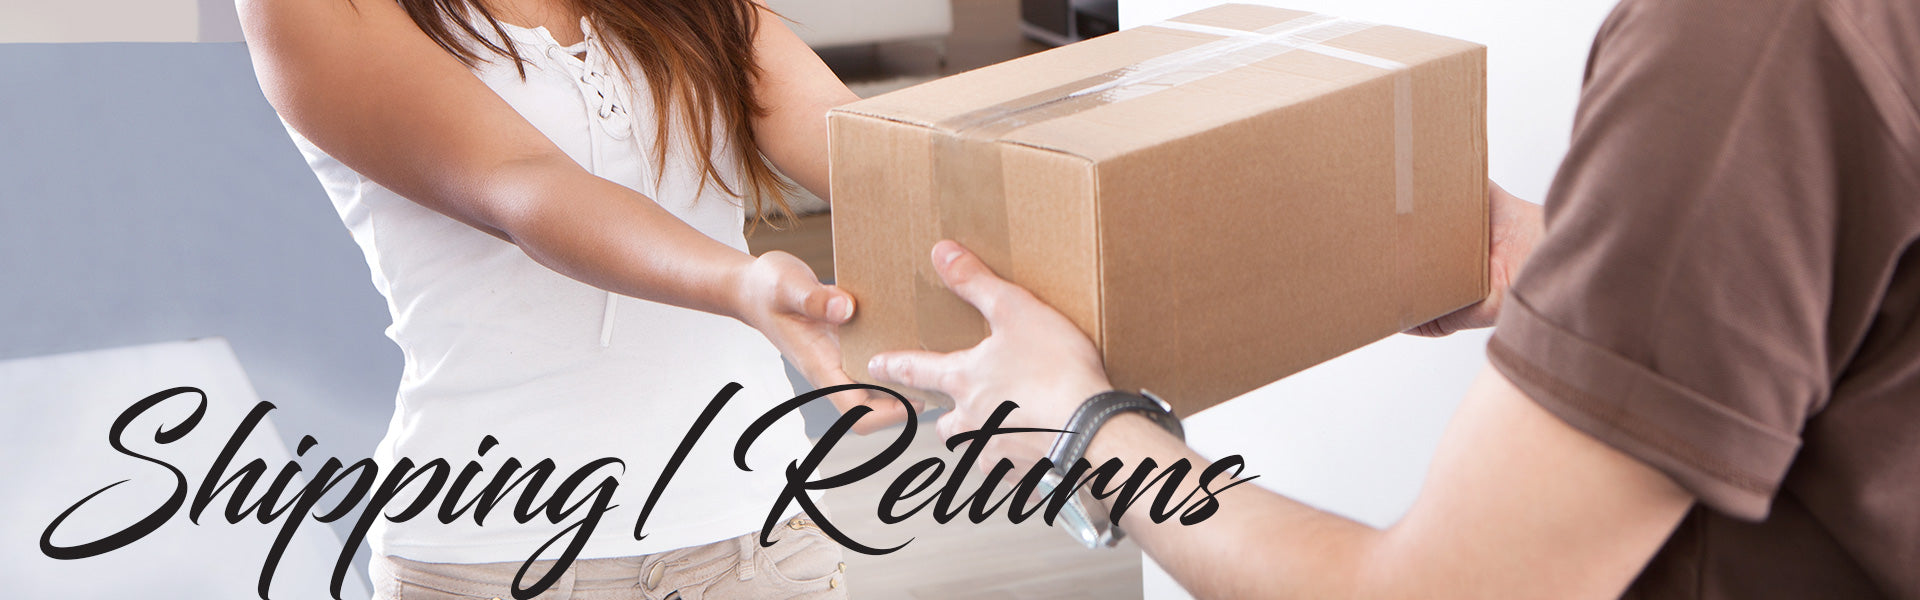 Bombshell Fashion Boutique Shipping and Returns